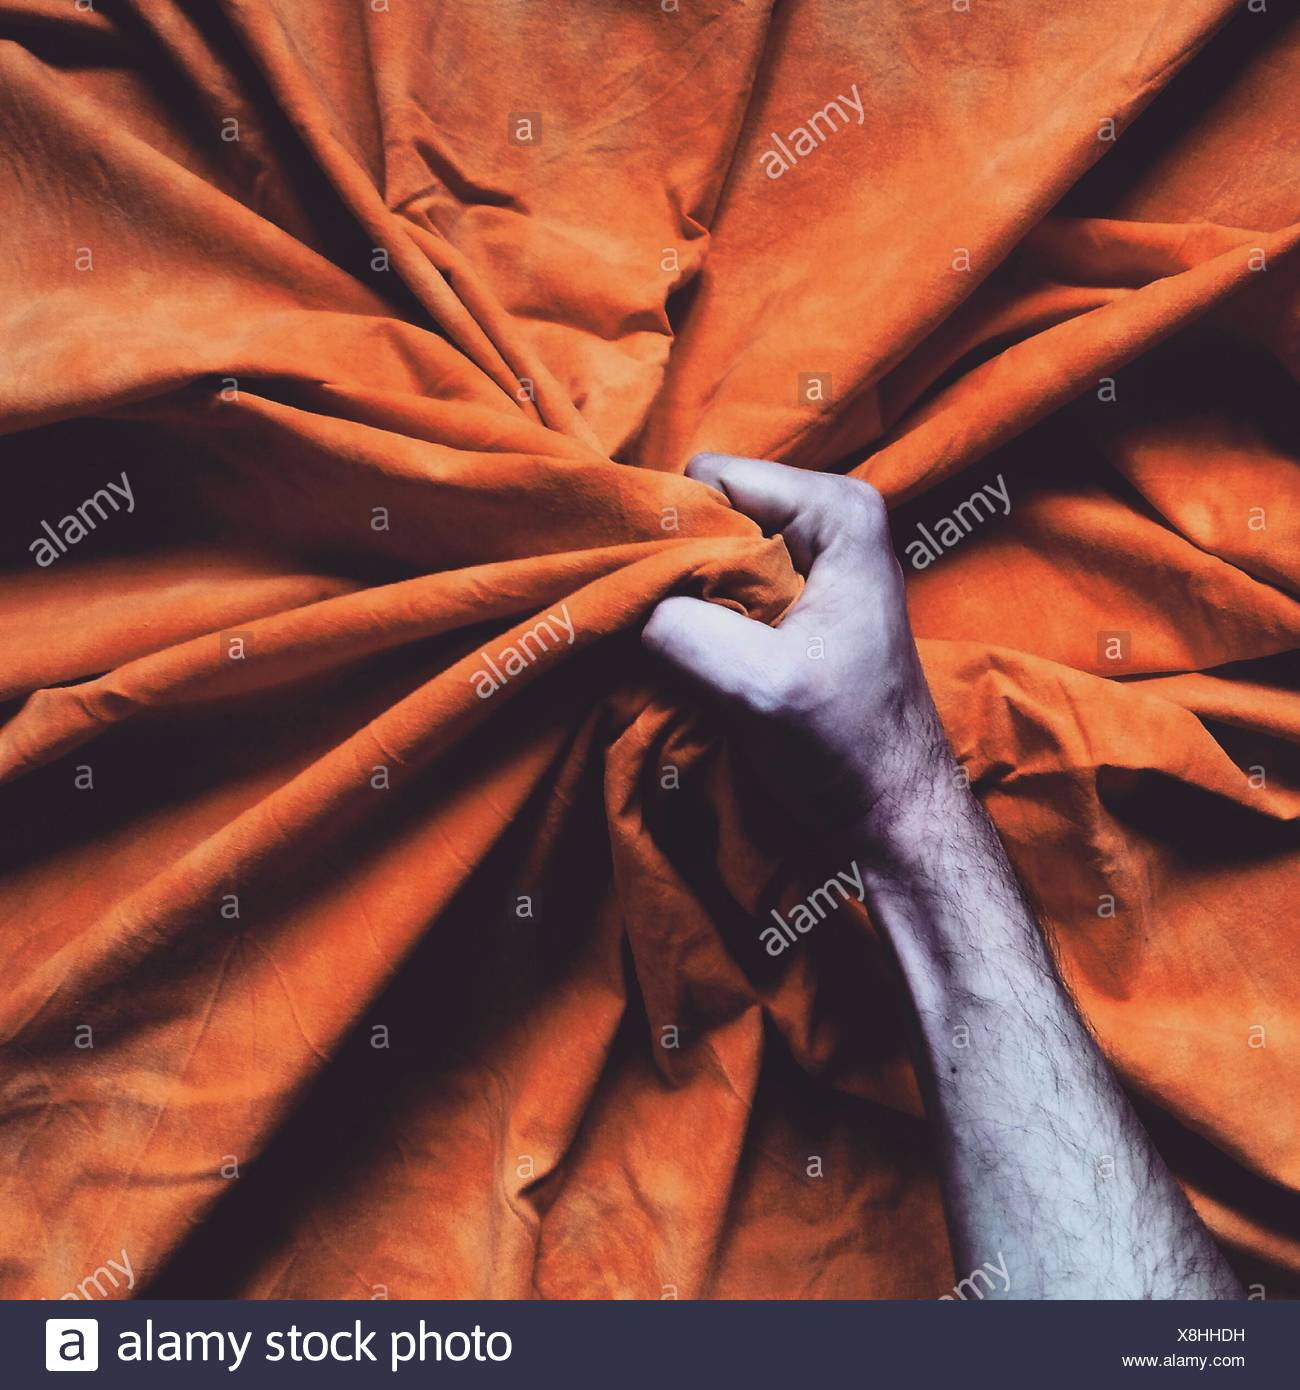 Close-Up Of A Hand Gripping Bedsheet - Stock Image